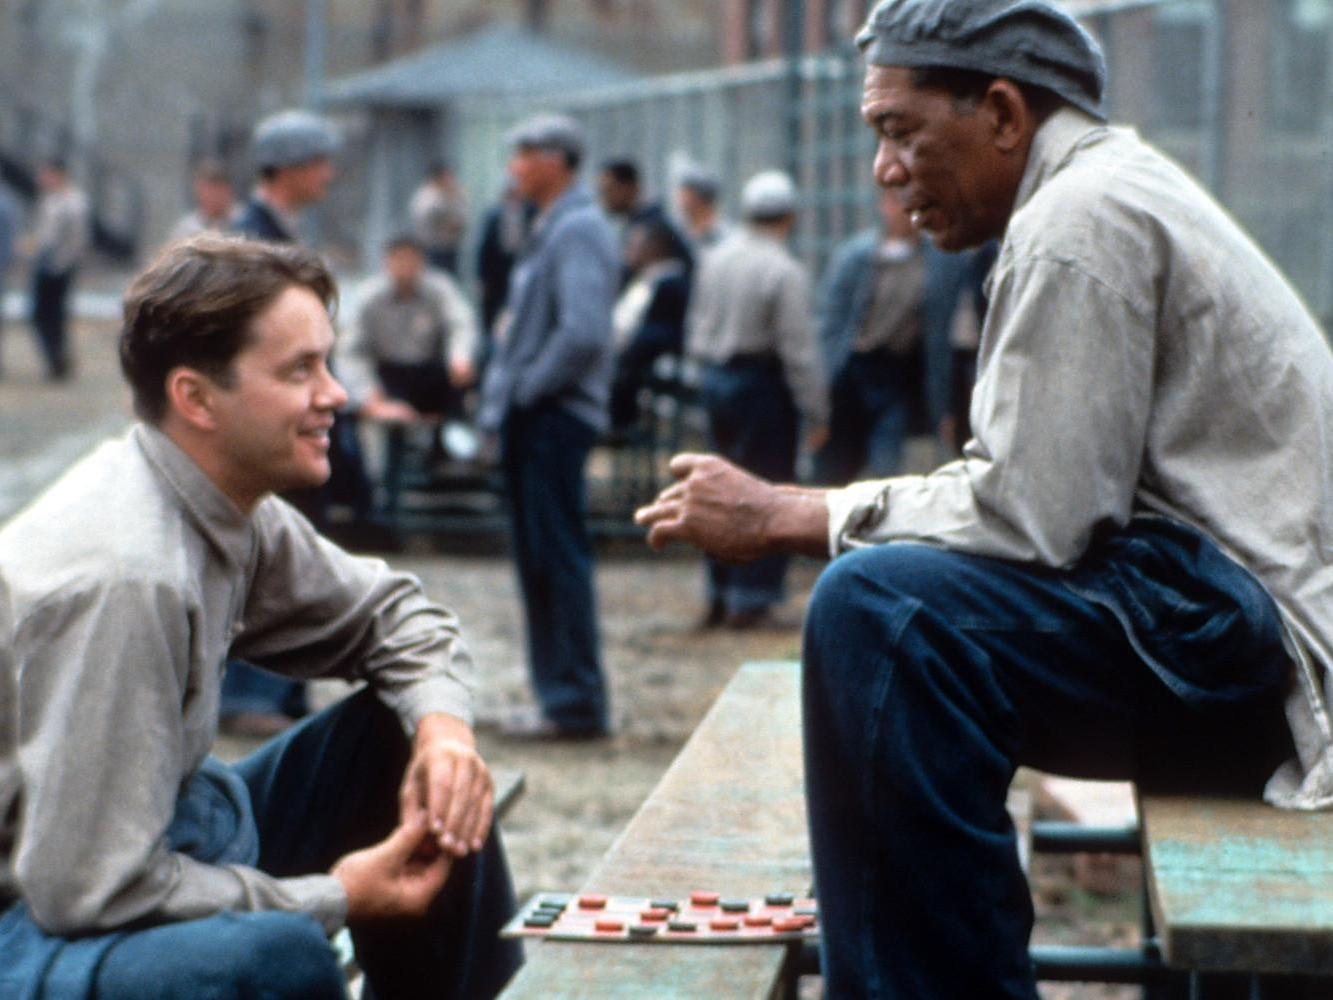 Shawshank Redemption director reflects on number one IMDb ranking: 'I find it hard to believe it's better than The Godfather'